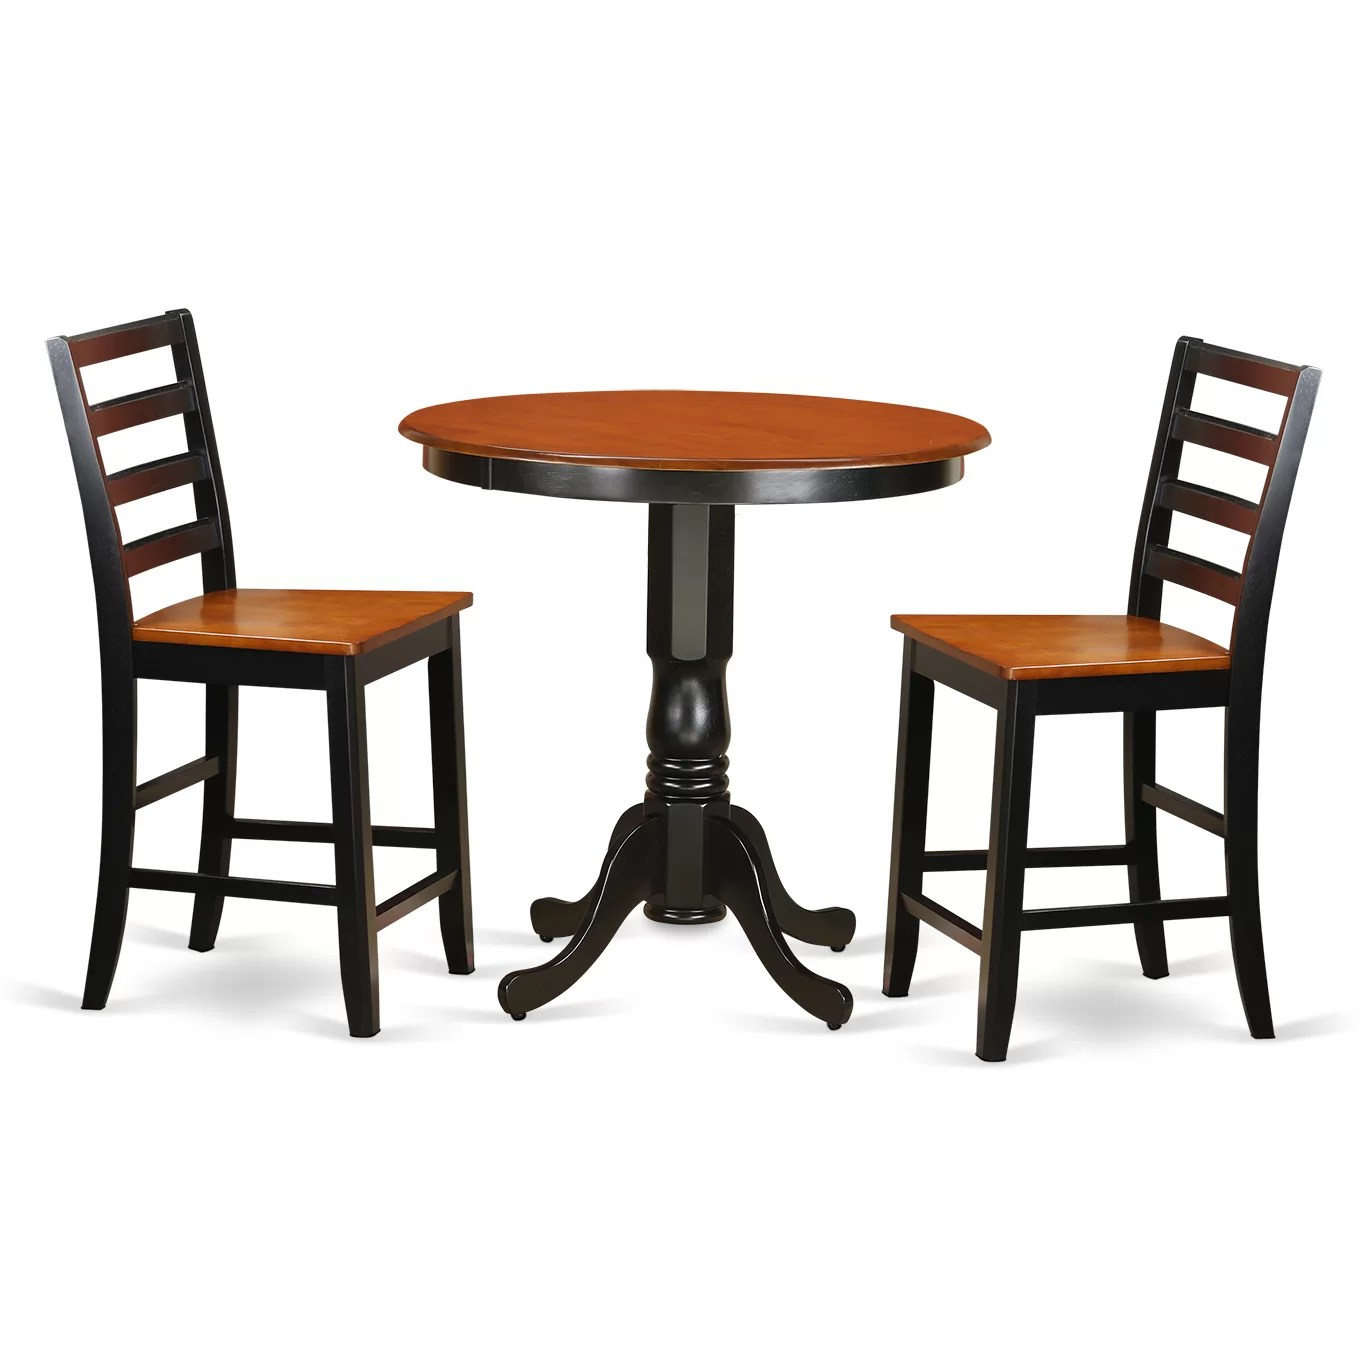 Bar Table Set Wooden Importers Jackson 3 Piece Counter Height Pub Table